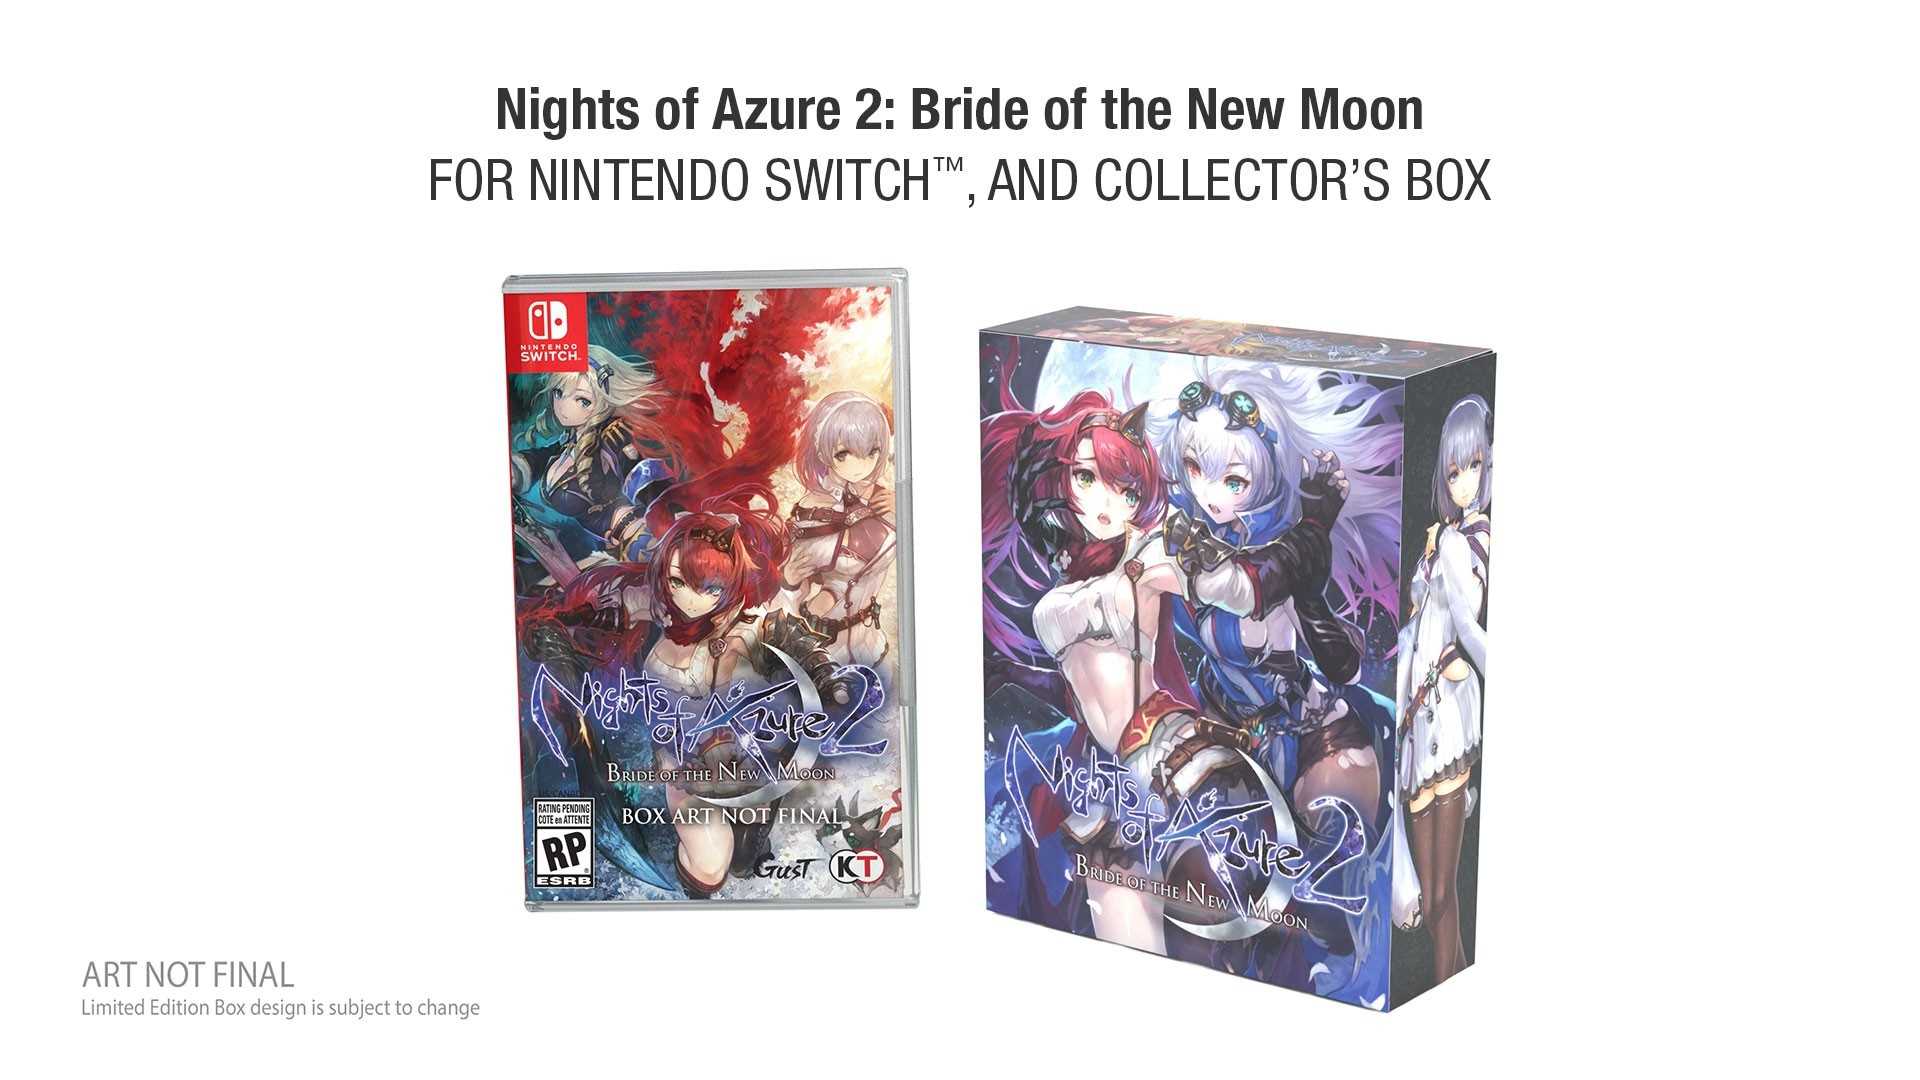 Nights Of Azure 2 Bride Of The New Moon Getting A Limited Edition